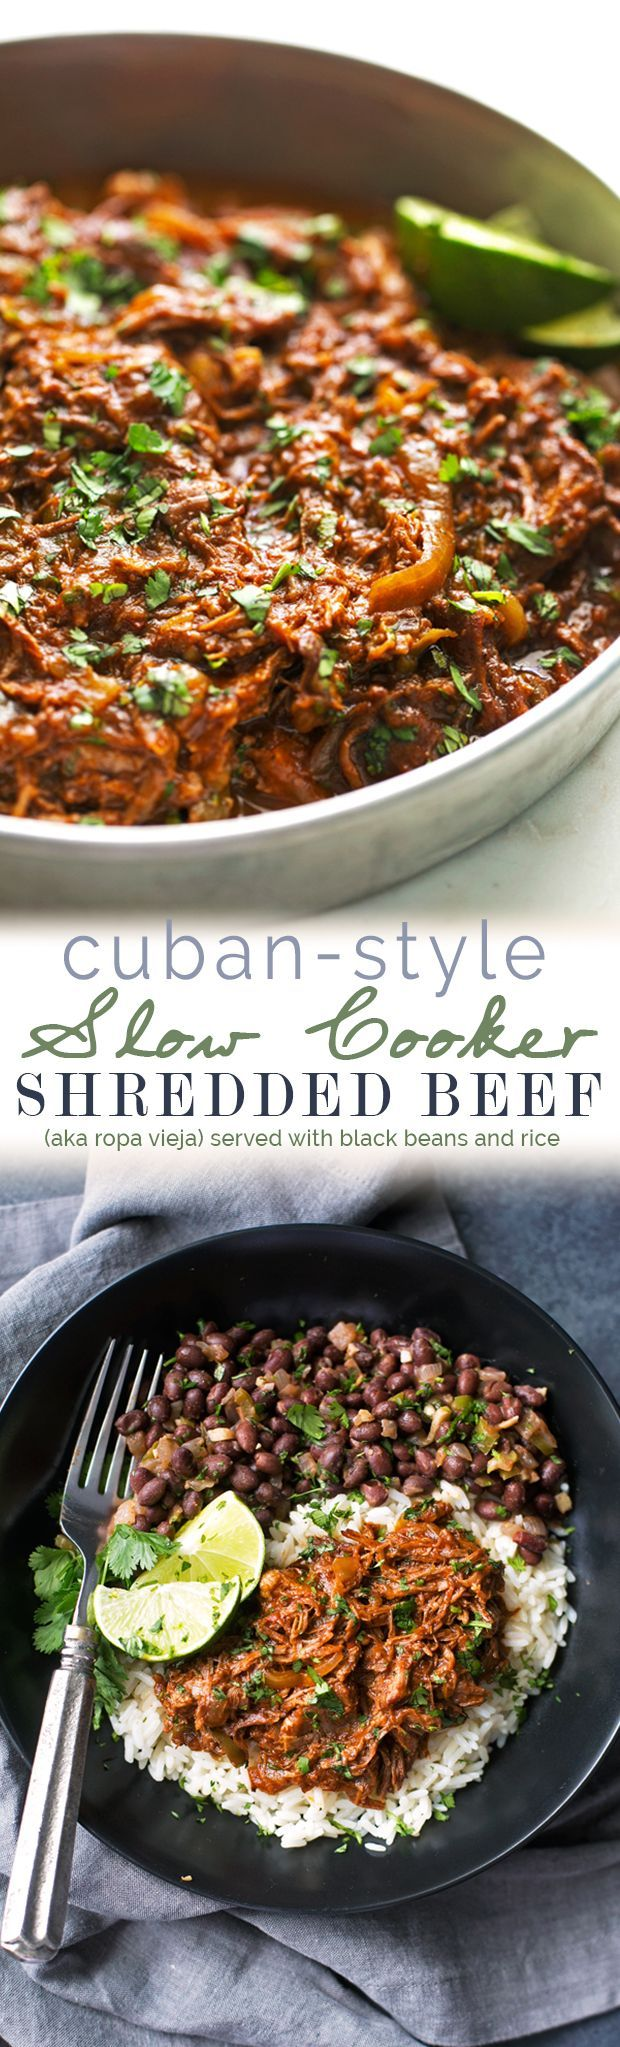 Cuban Shredded Beef (Slow Cooker) - The easiest recipe for ropa vieja! Made in the slow cooker. Just add everything in and out comes the most tender, shredded beef EVER! #cubanshreddedbeef #shreddedbeeftacos #ropavieja #slowcooker   http://Littlespicejar.com